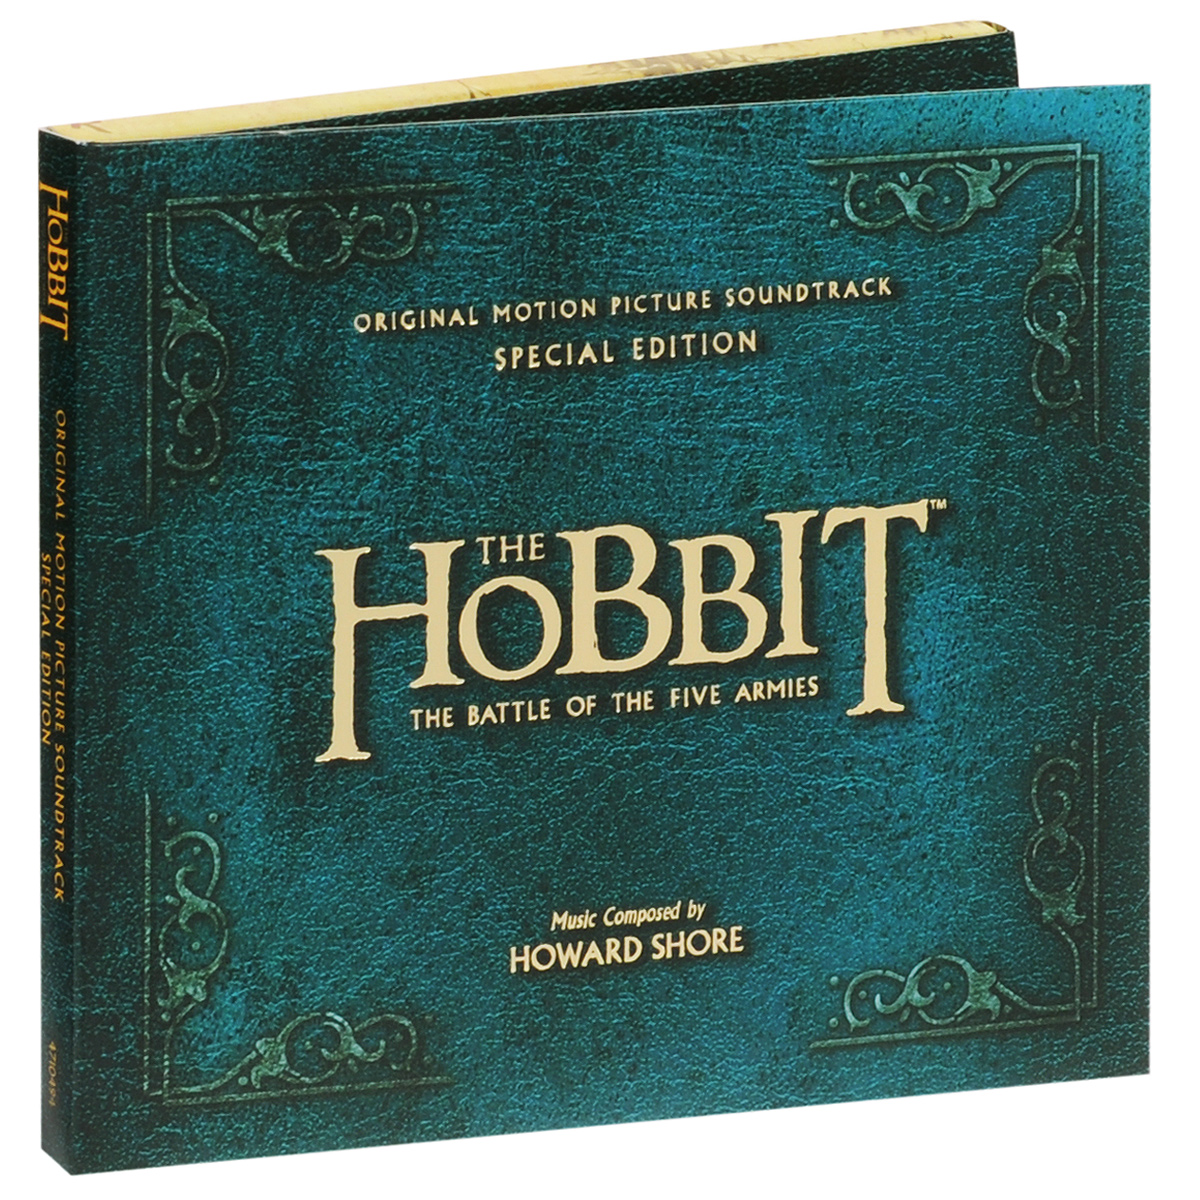 Zakazat.ru The Hobbit. The Battle Of The Five Armies. Original Montion Picture Soundtrack. Special Edition (2 CD)